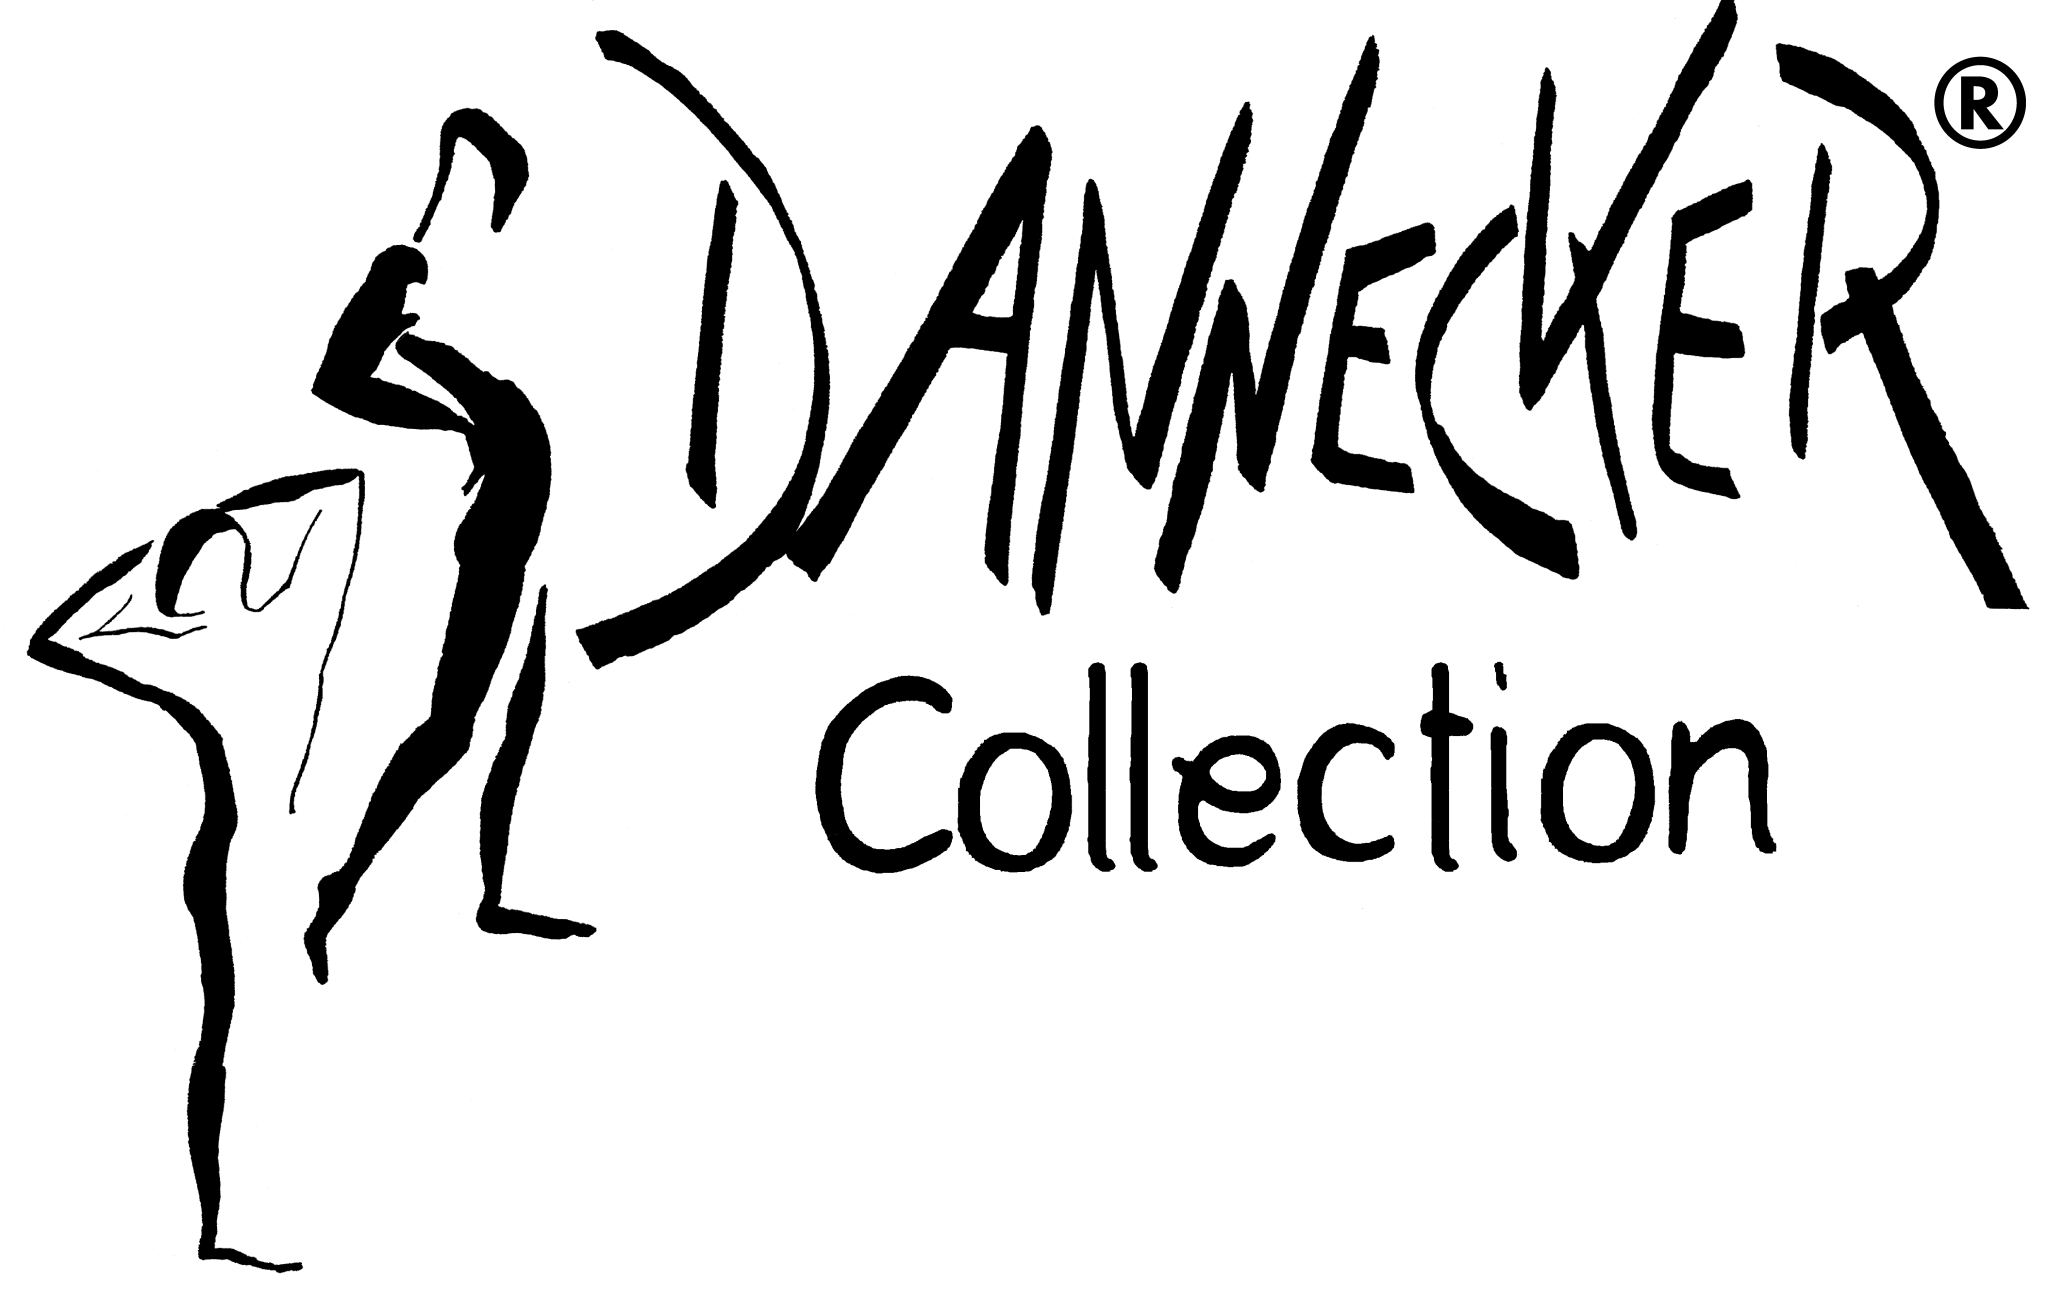 dannecker-collection_1.png